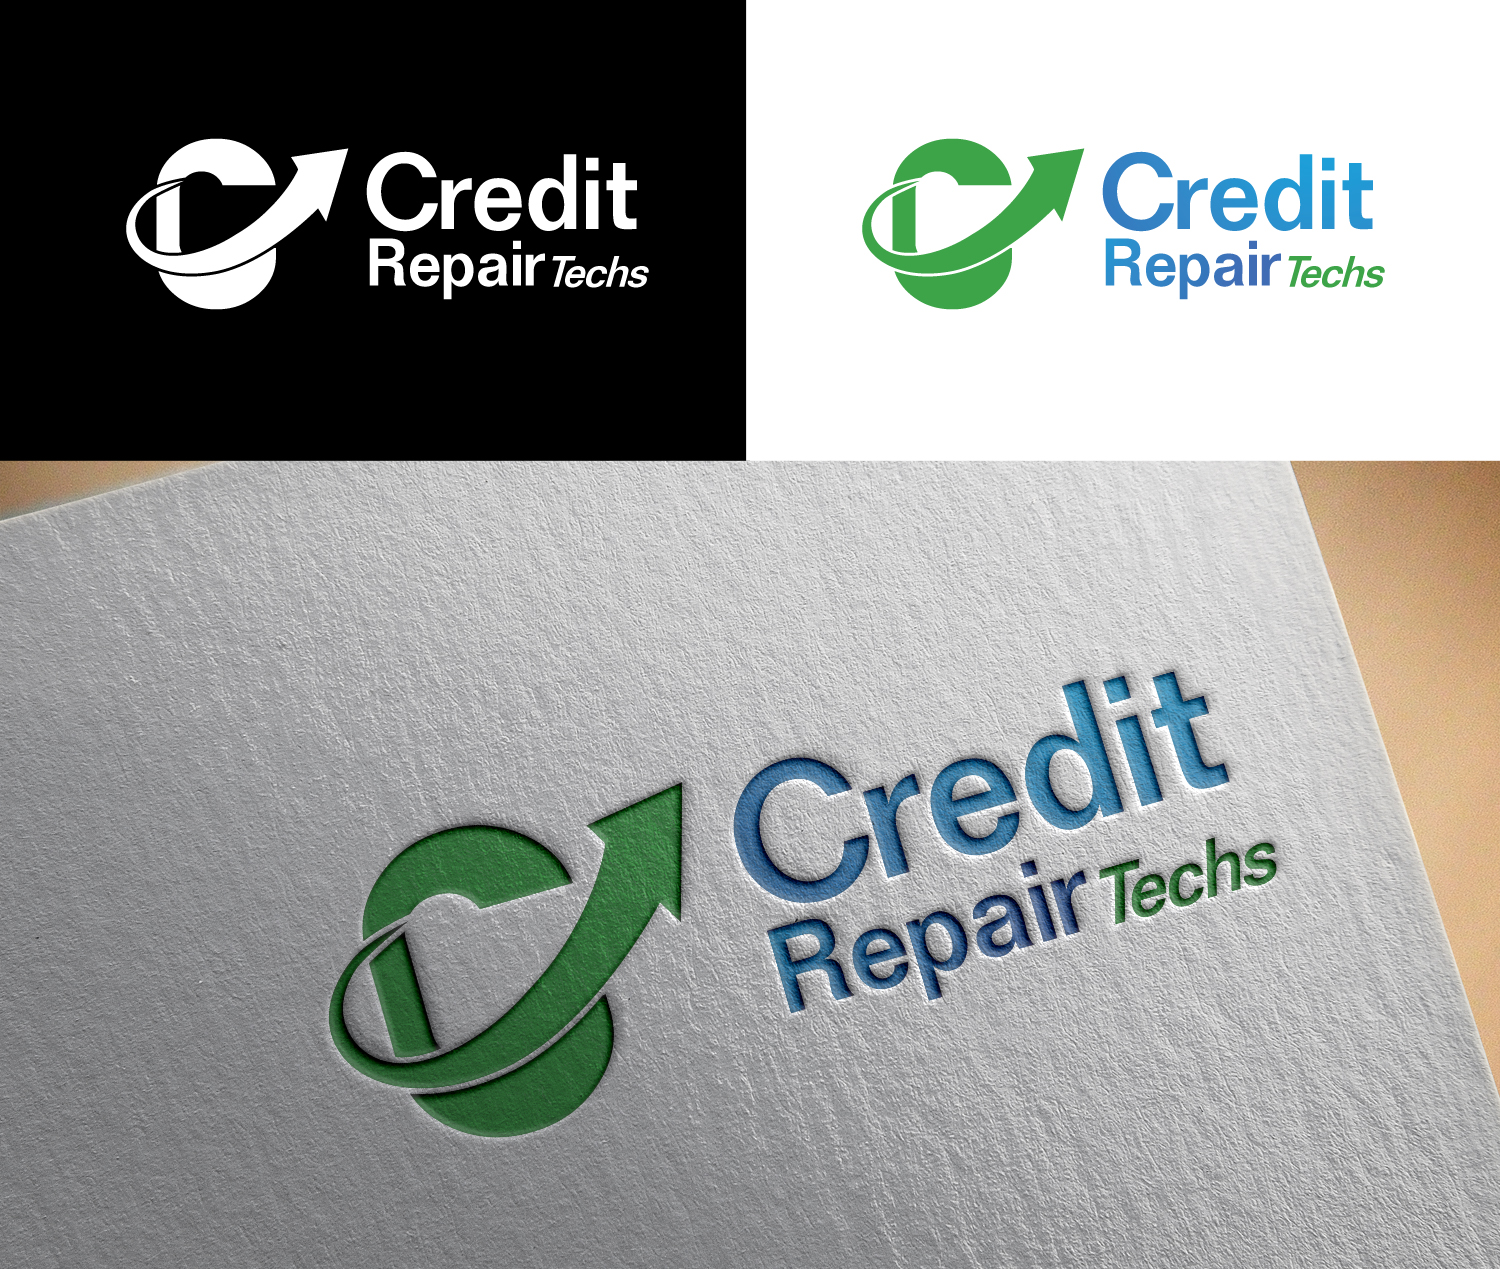 Elegant Playful Business Logo Design For Credit Repair Techs By Artdot06 Design 12658942